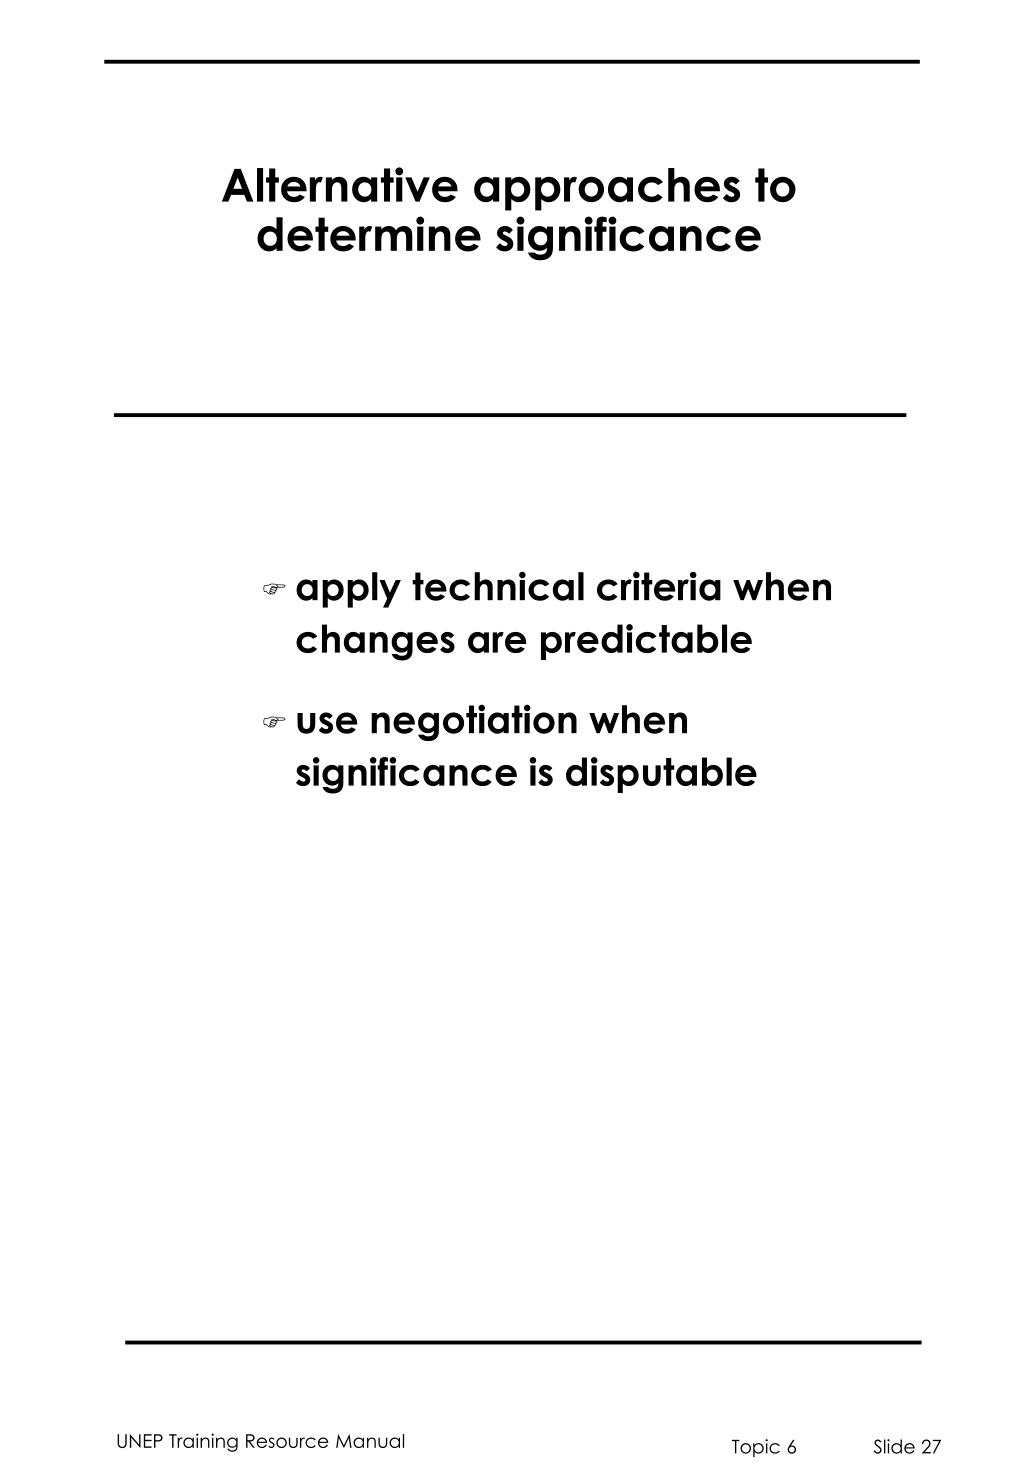 Alternative approaches to determine significance